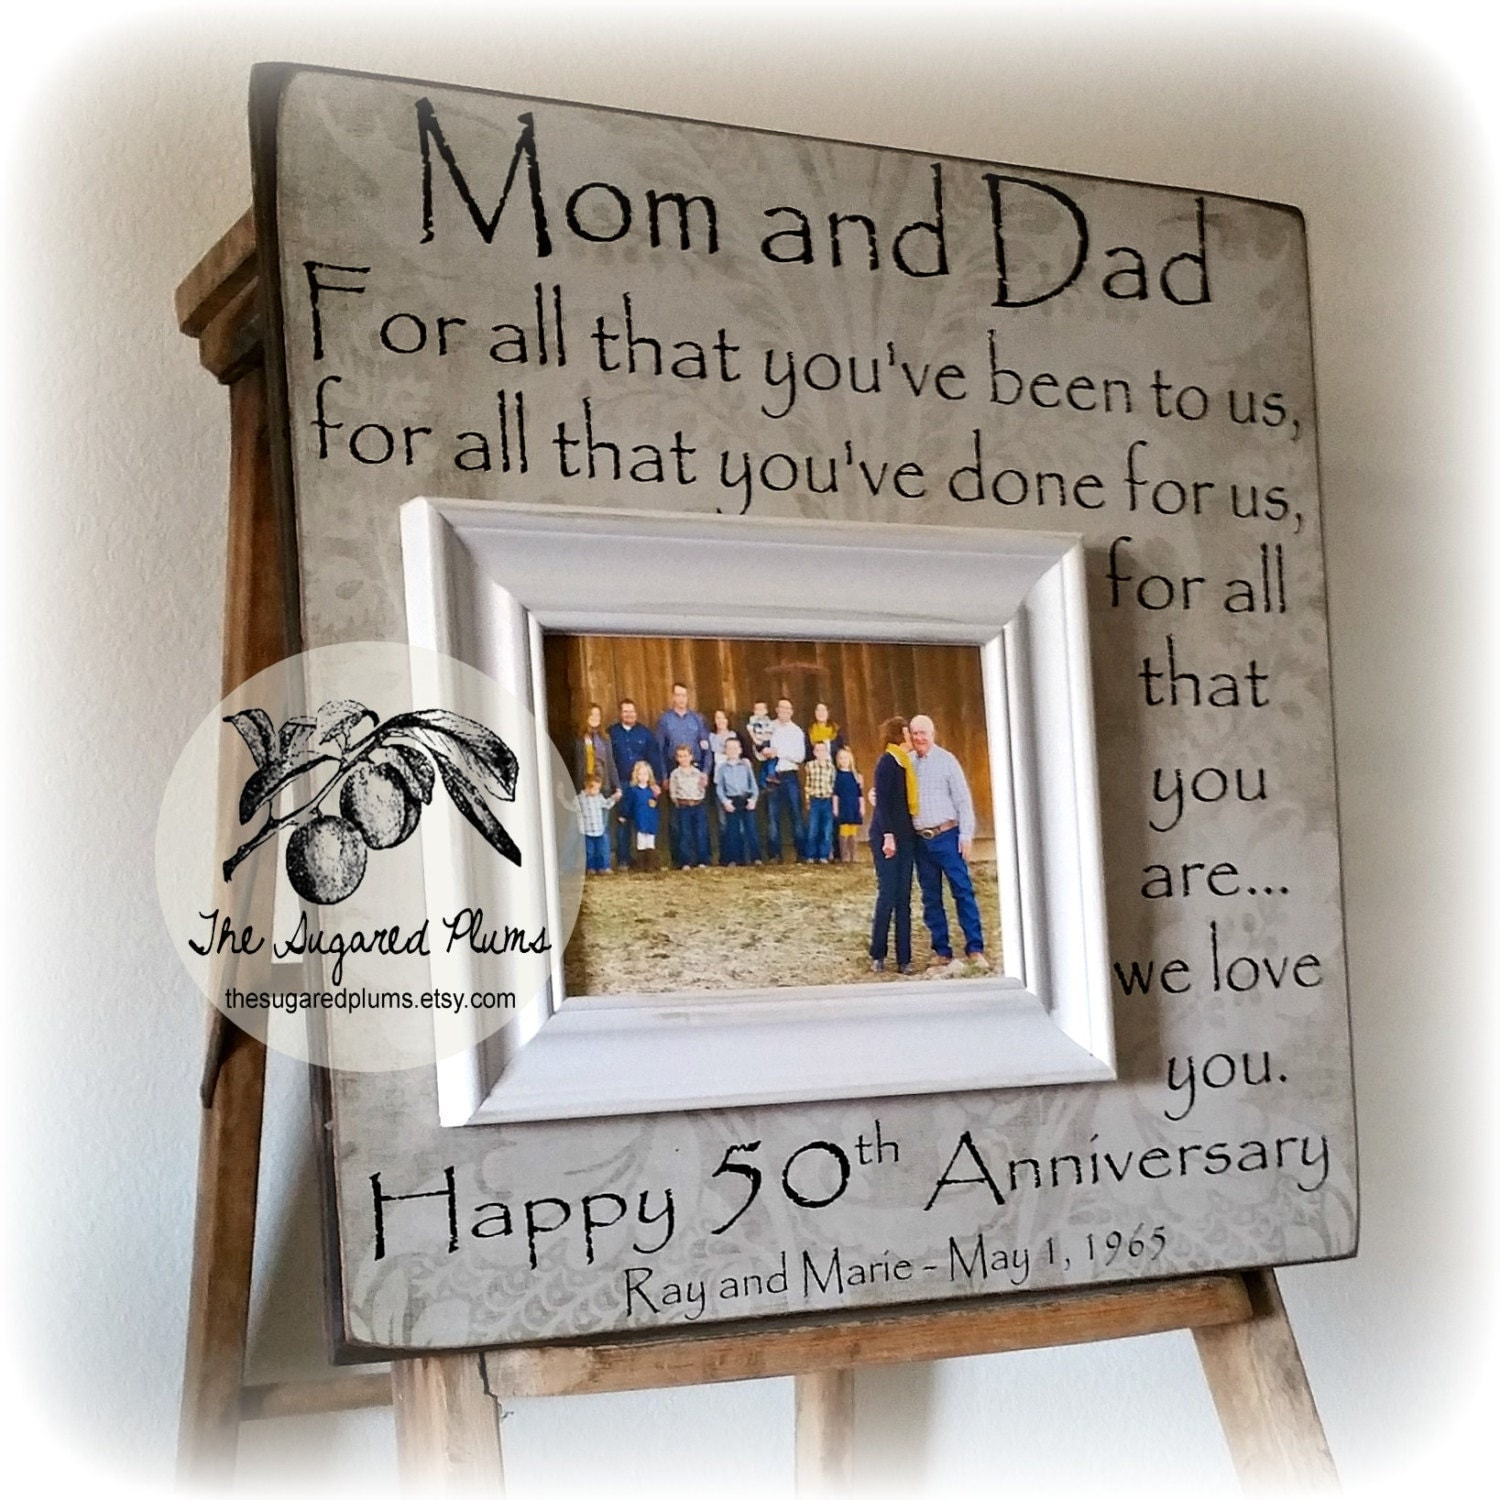 Wedding Anniversary Gift For New Mom : 50th Anniversary Gifts Parents Anniversary Gift For All That